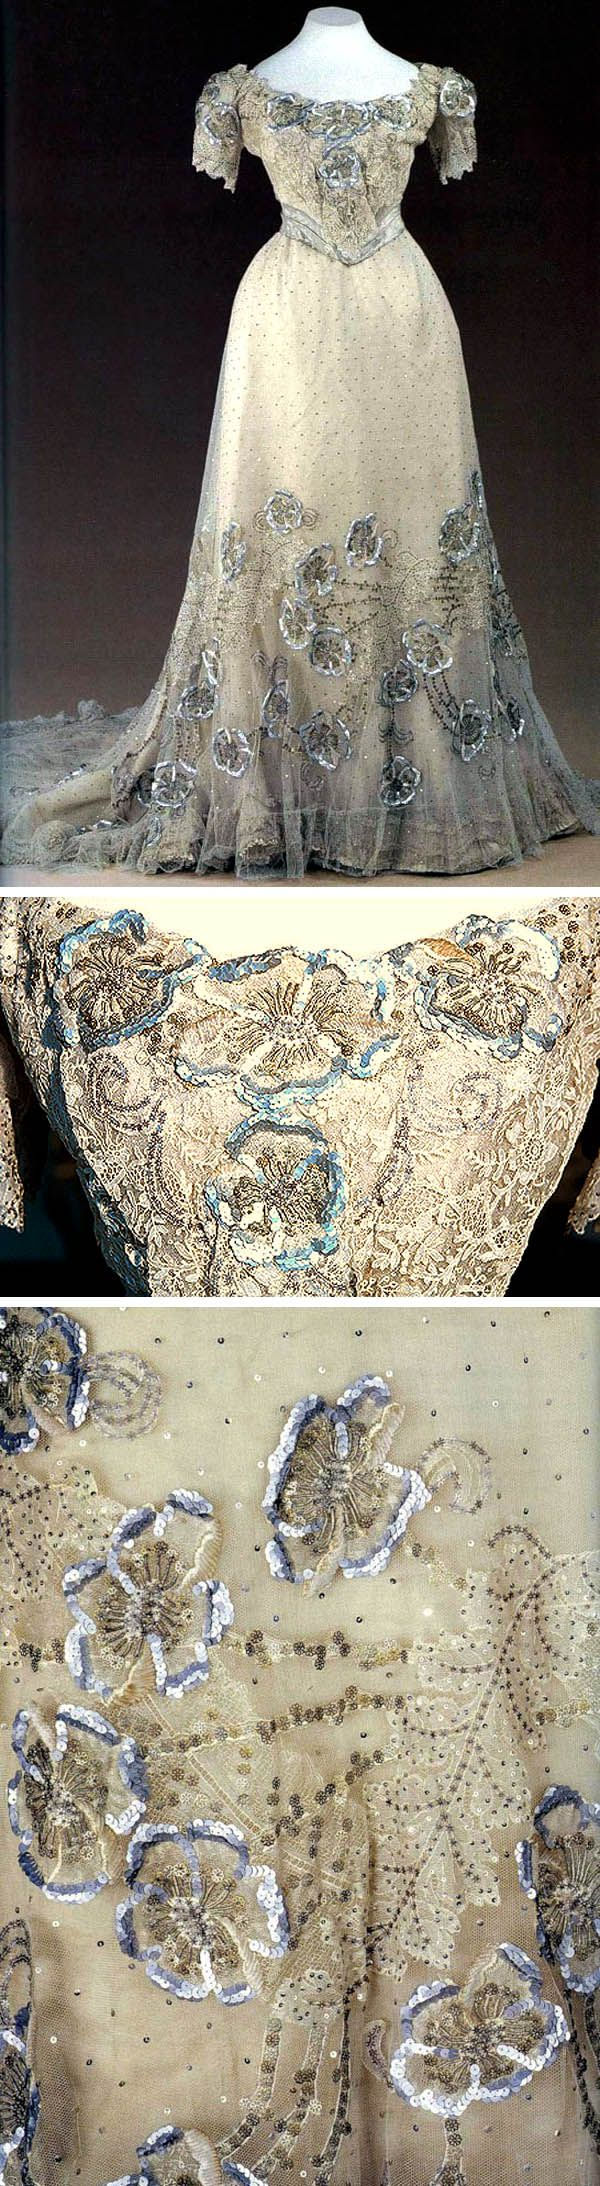 Evening gown, Nadezhda Lamanova, Moscow, early 1900s. White satin with tulle and chiffon, sequins, and embroidery. Silver brocade belt. Made for Empress Alexandra.